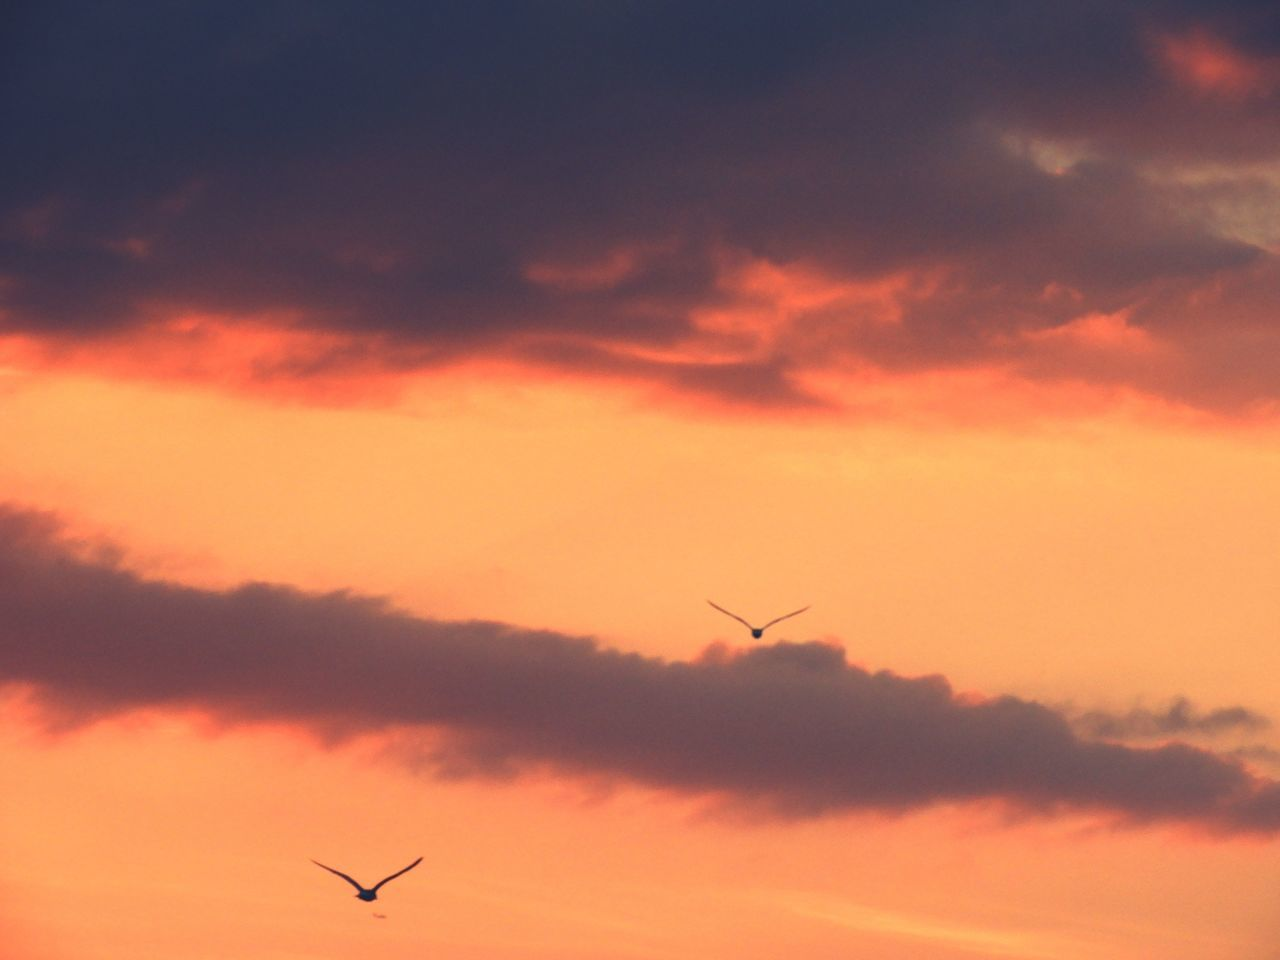 Flying Sunset Silhouette Sky No People Nature Animal Wildlife Animals In The Wild Birds Flying Birds Sunset Silhouettes EyeEmNewHere The Week Of Eyeem Romantic Sky Dramatic Sky Tranquility Beauty In Nature Animal Themes Bird Natural Phenomenon Dusk Dusk Sky